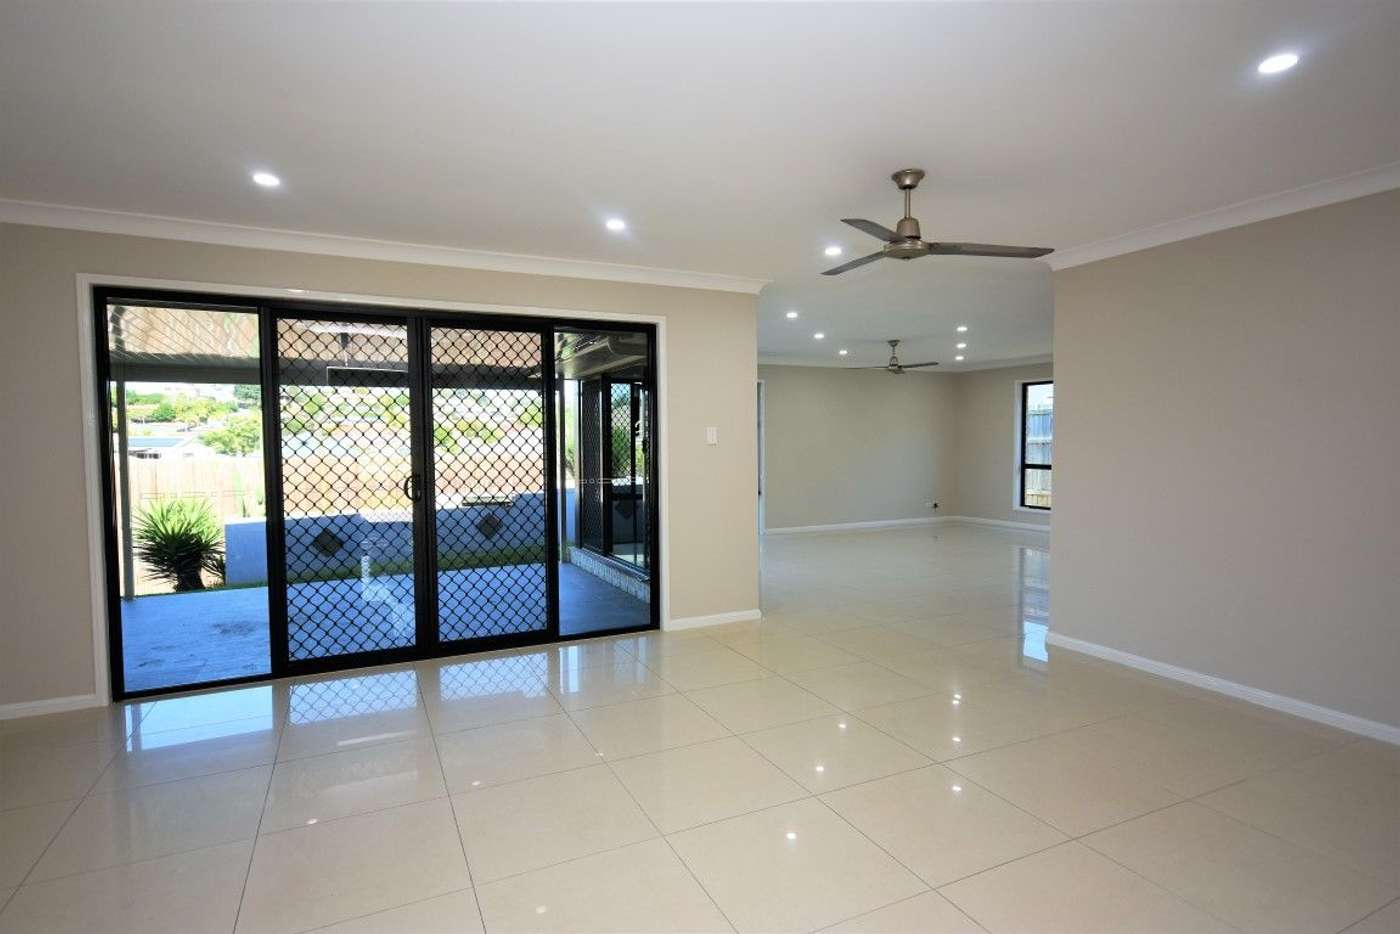 Seventh view of Homely house listing, 39 Kernel Road, Narangba QLD 4504